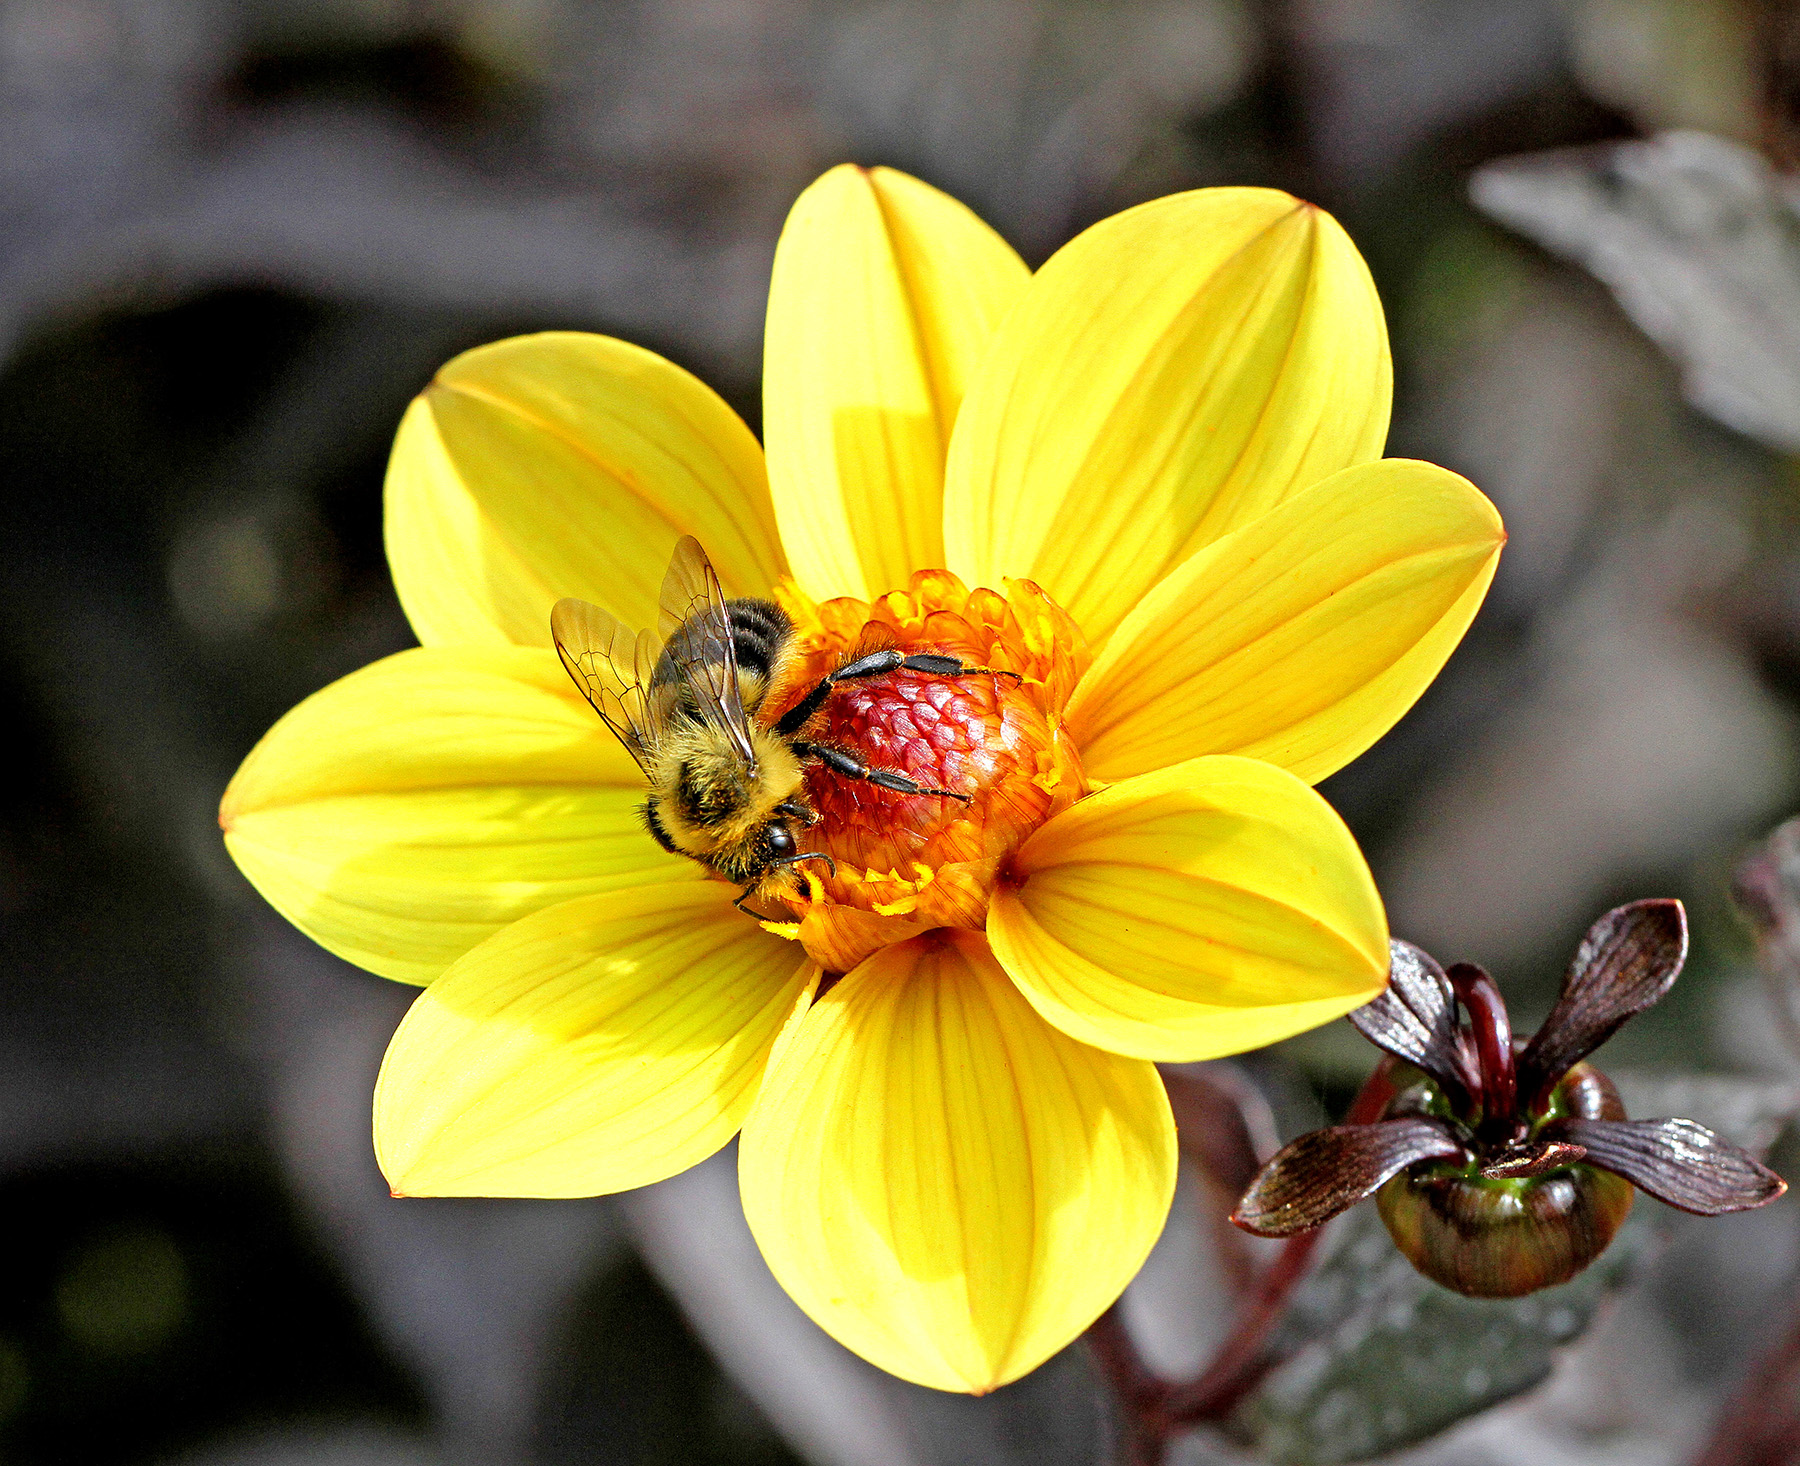 Blooms and Bees